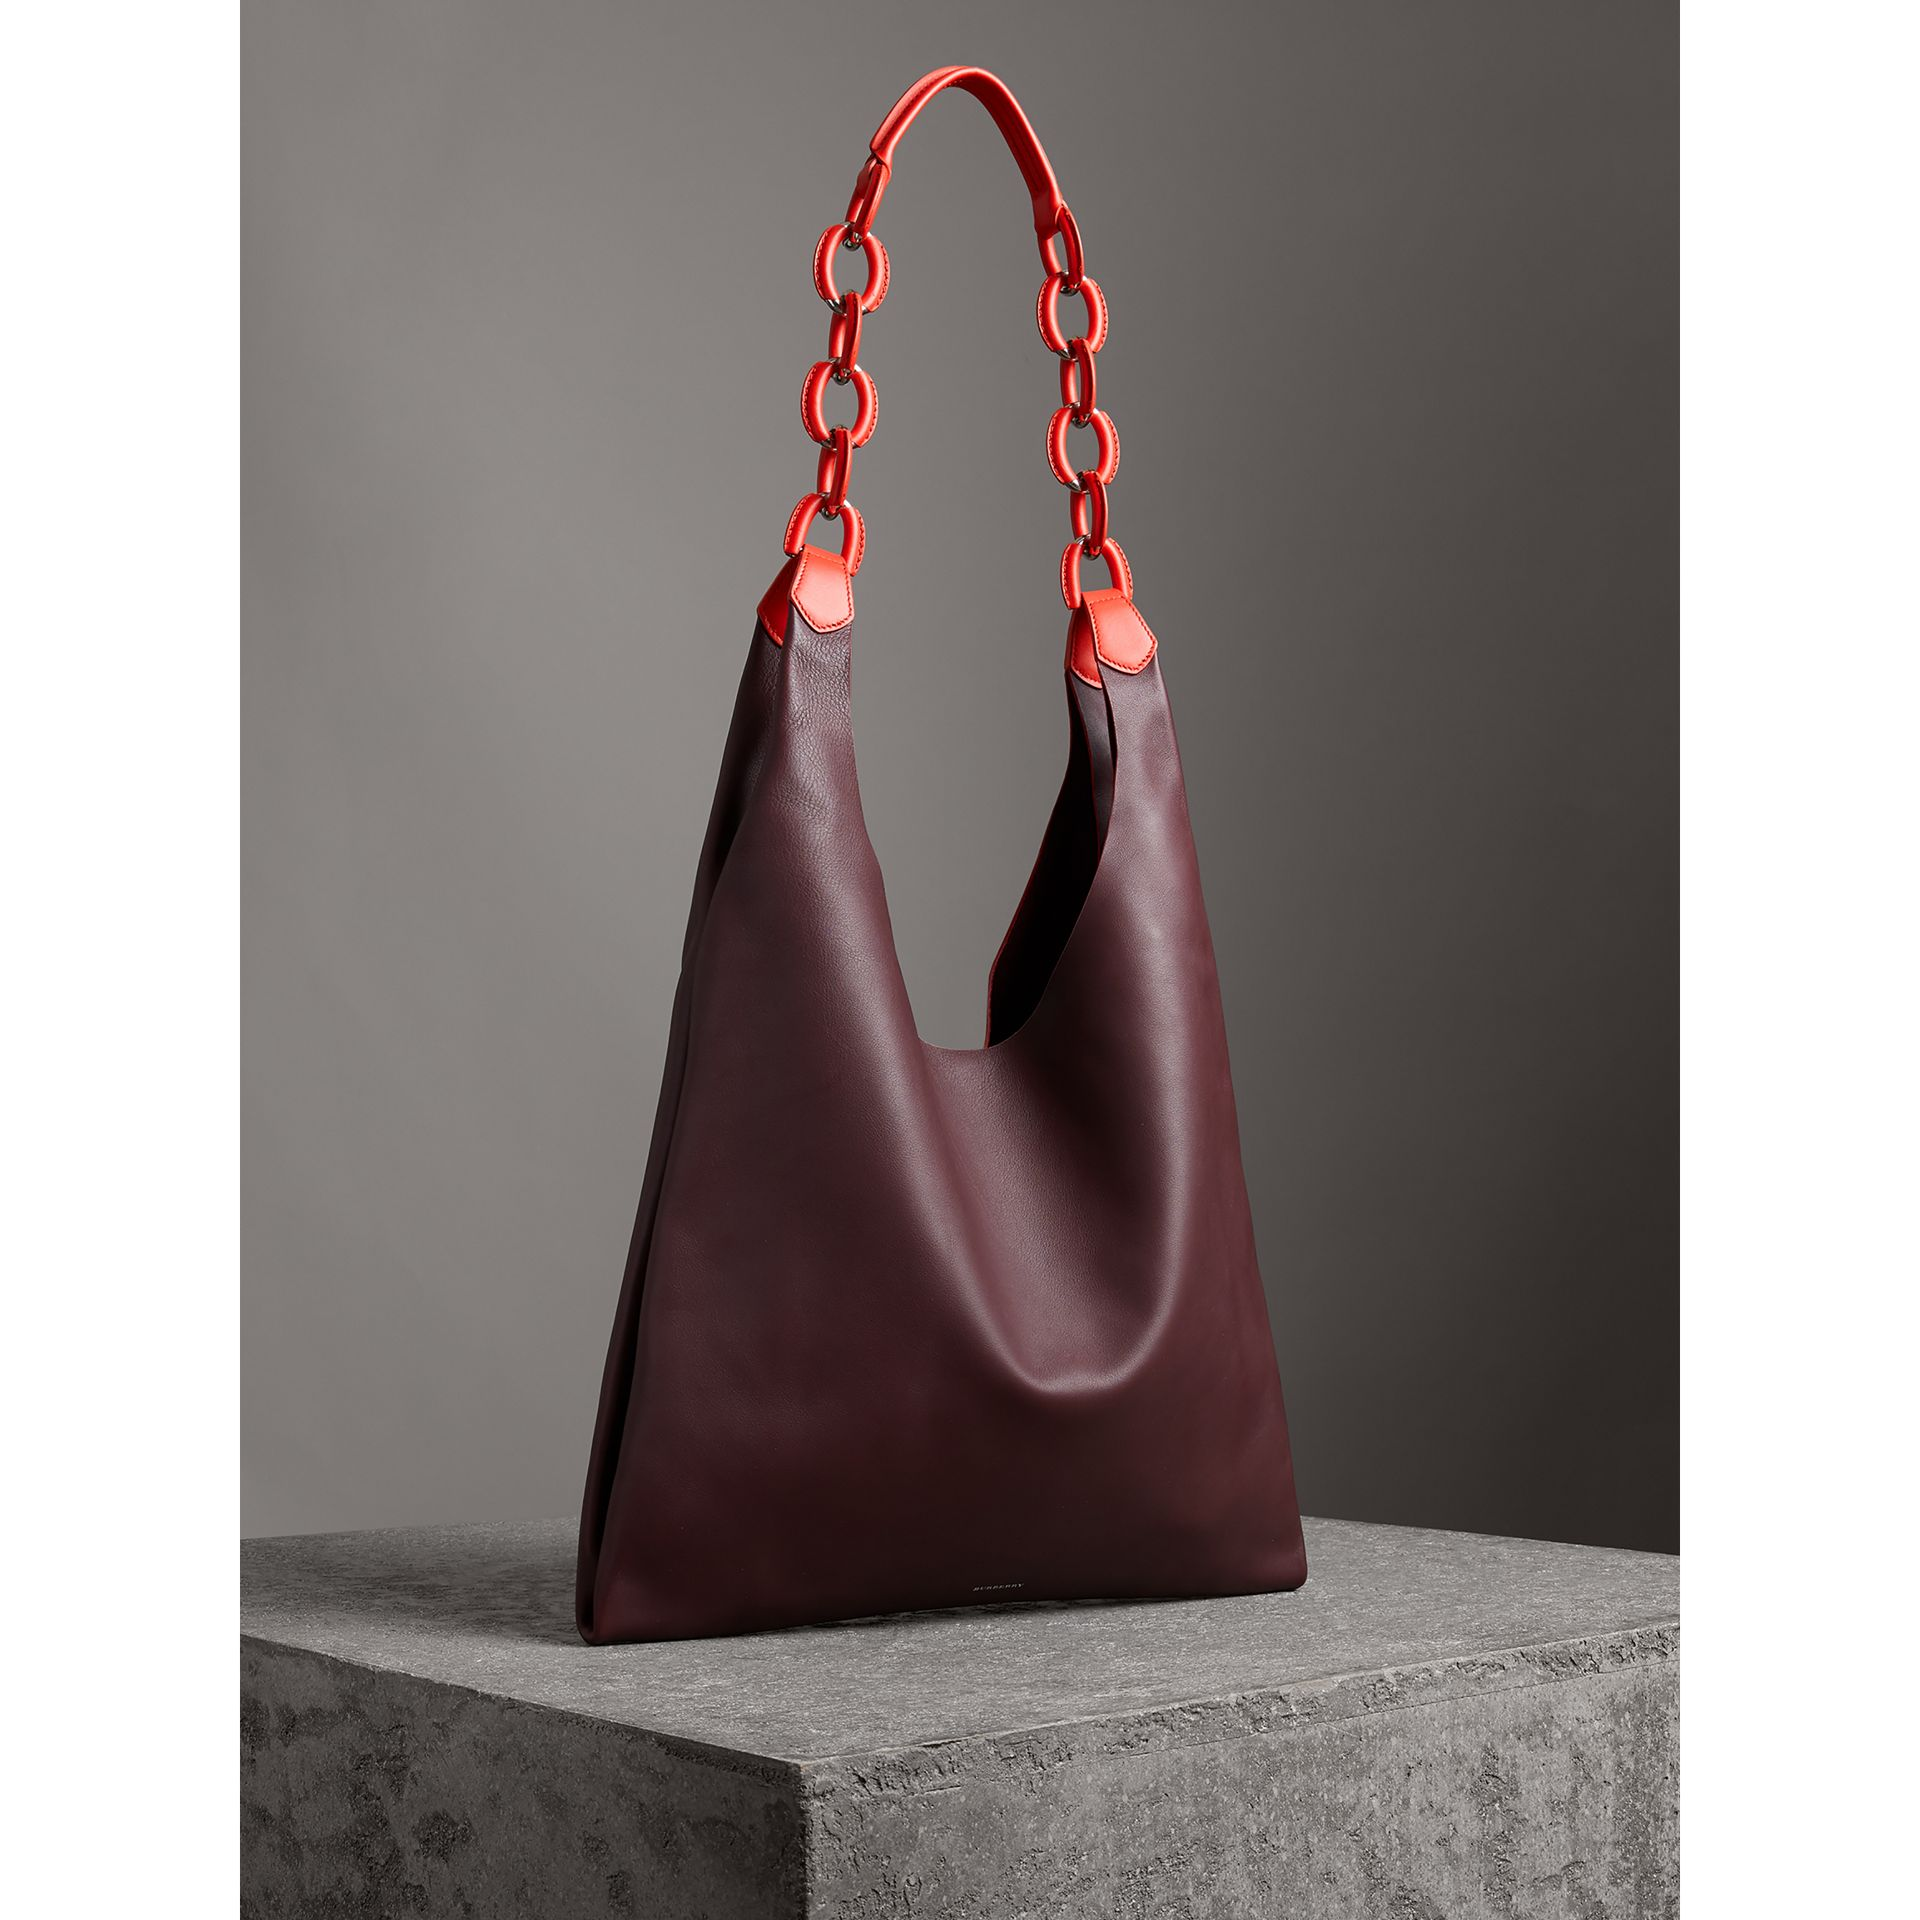 Medium Two-tone Leather Shopper in Deep Claret - Women | Burberry - gallery image 6